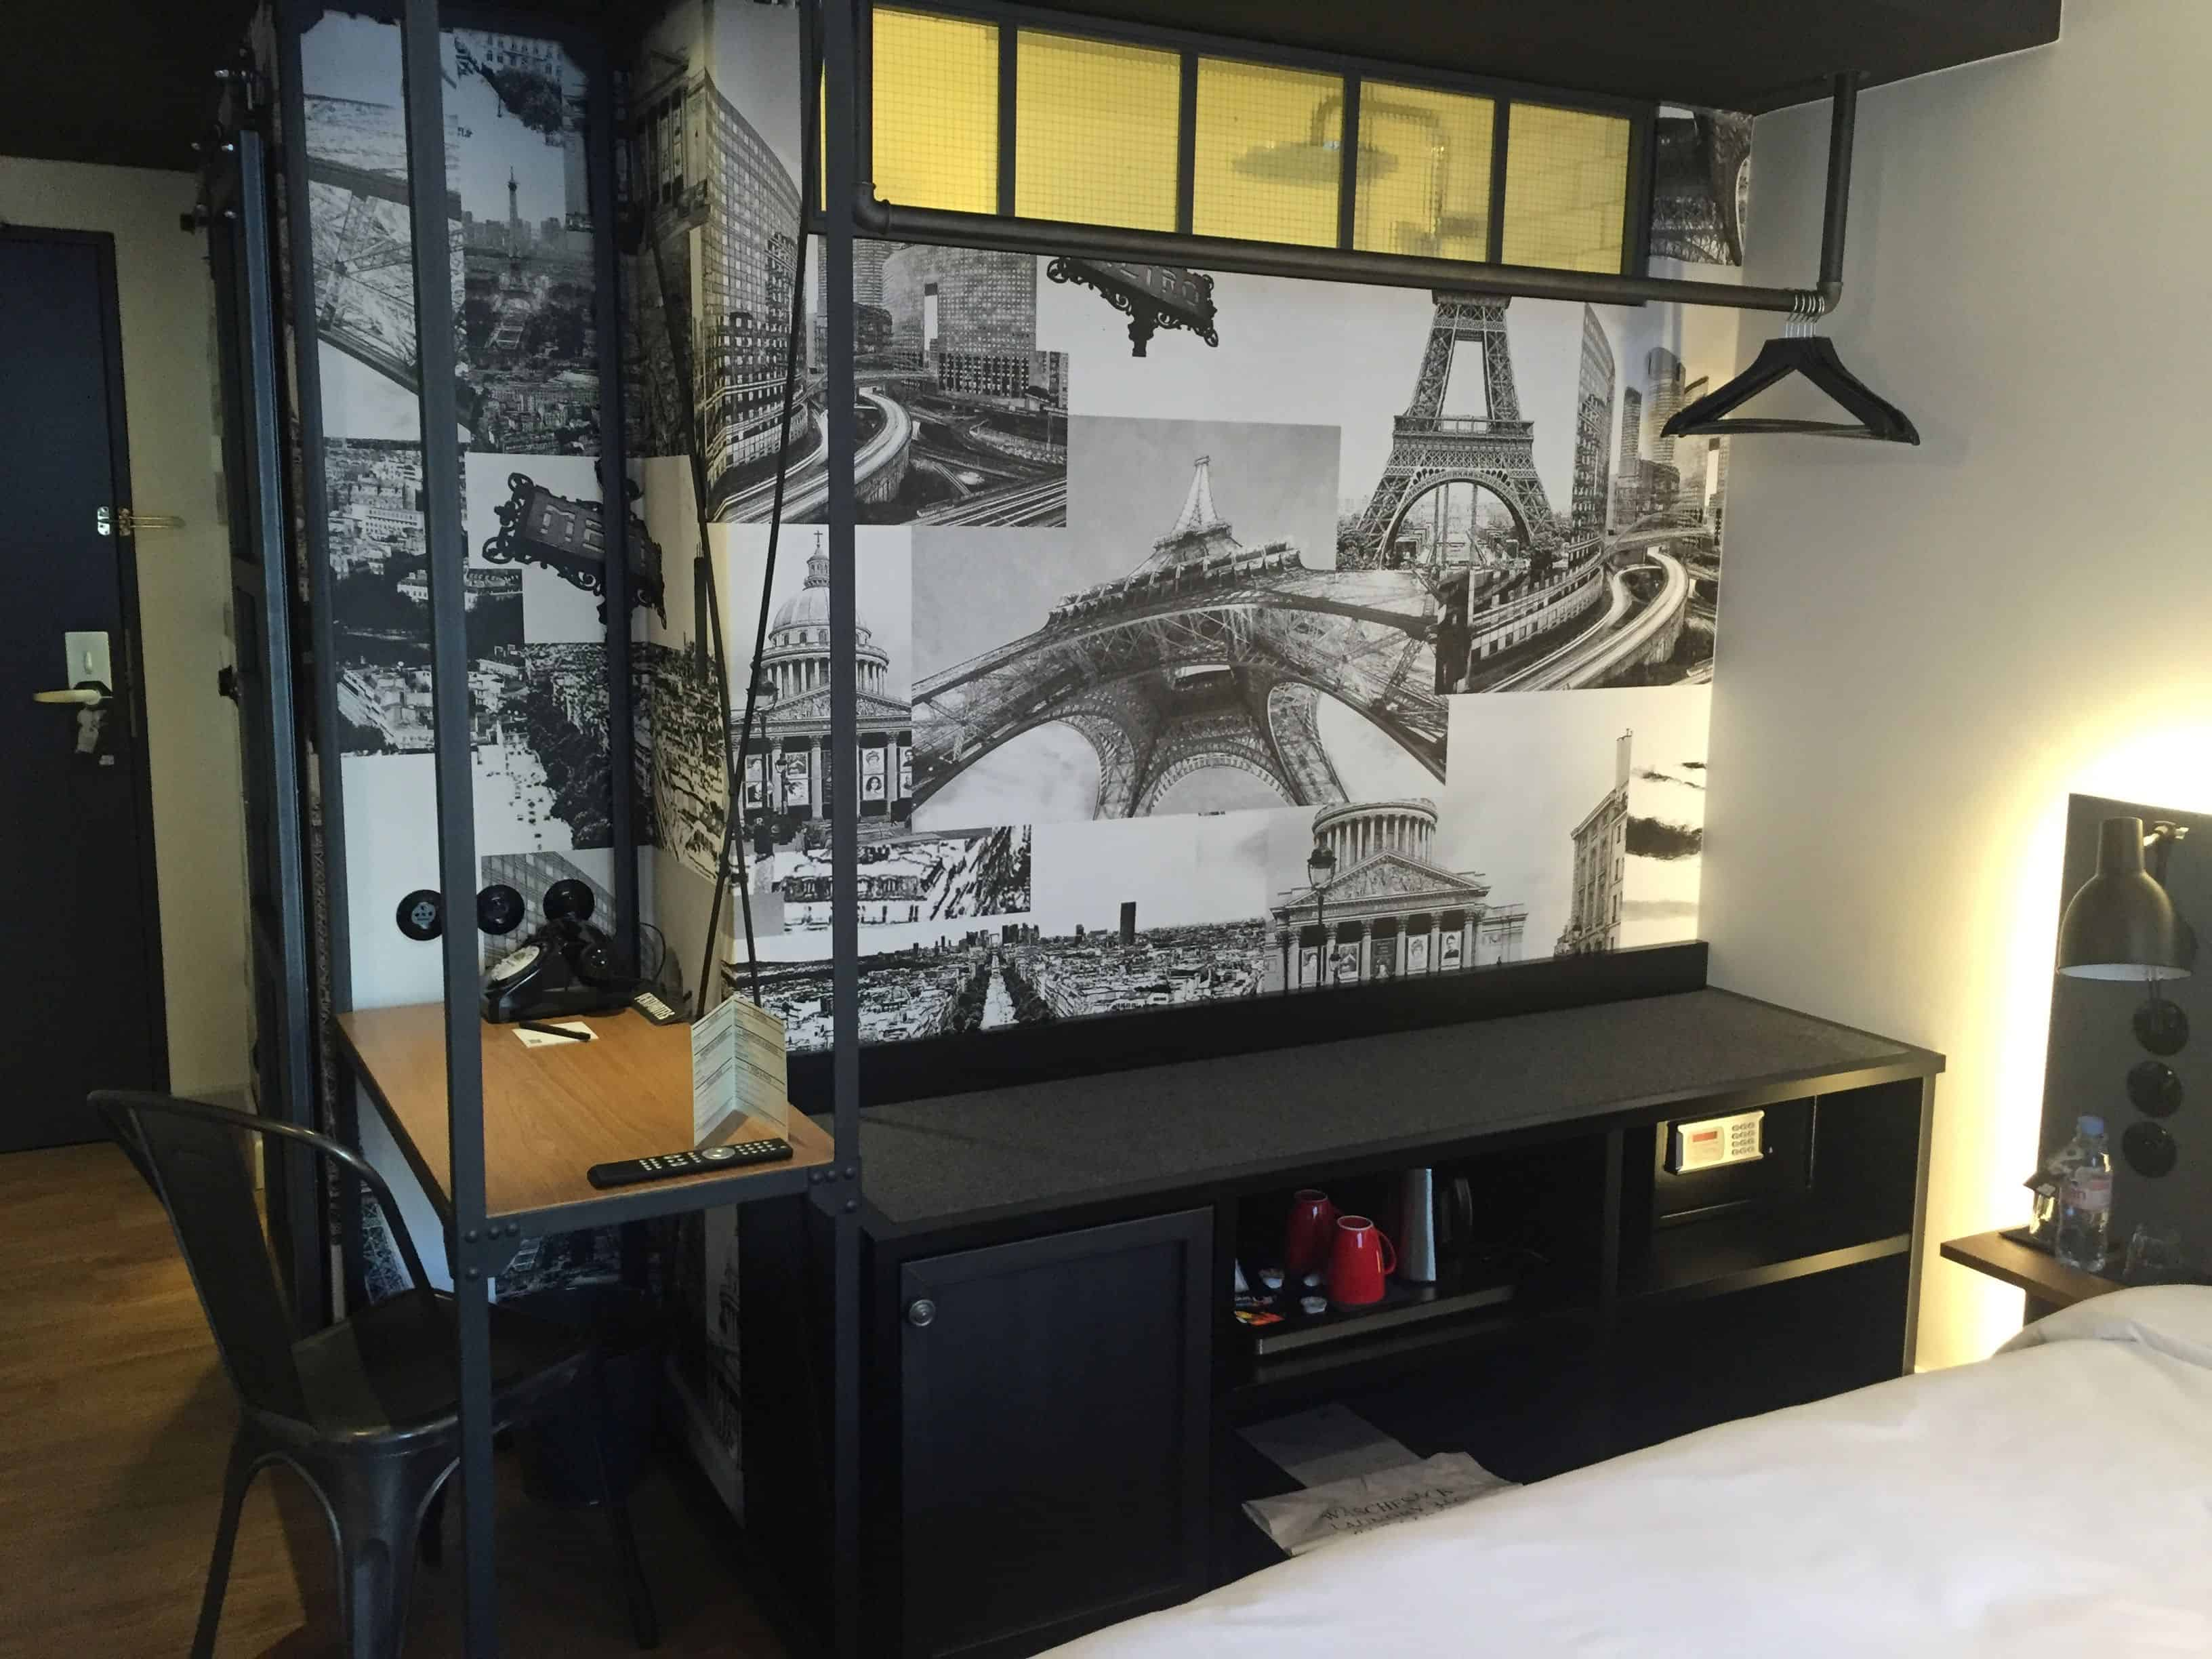 Industrial room design with modern accents